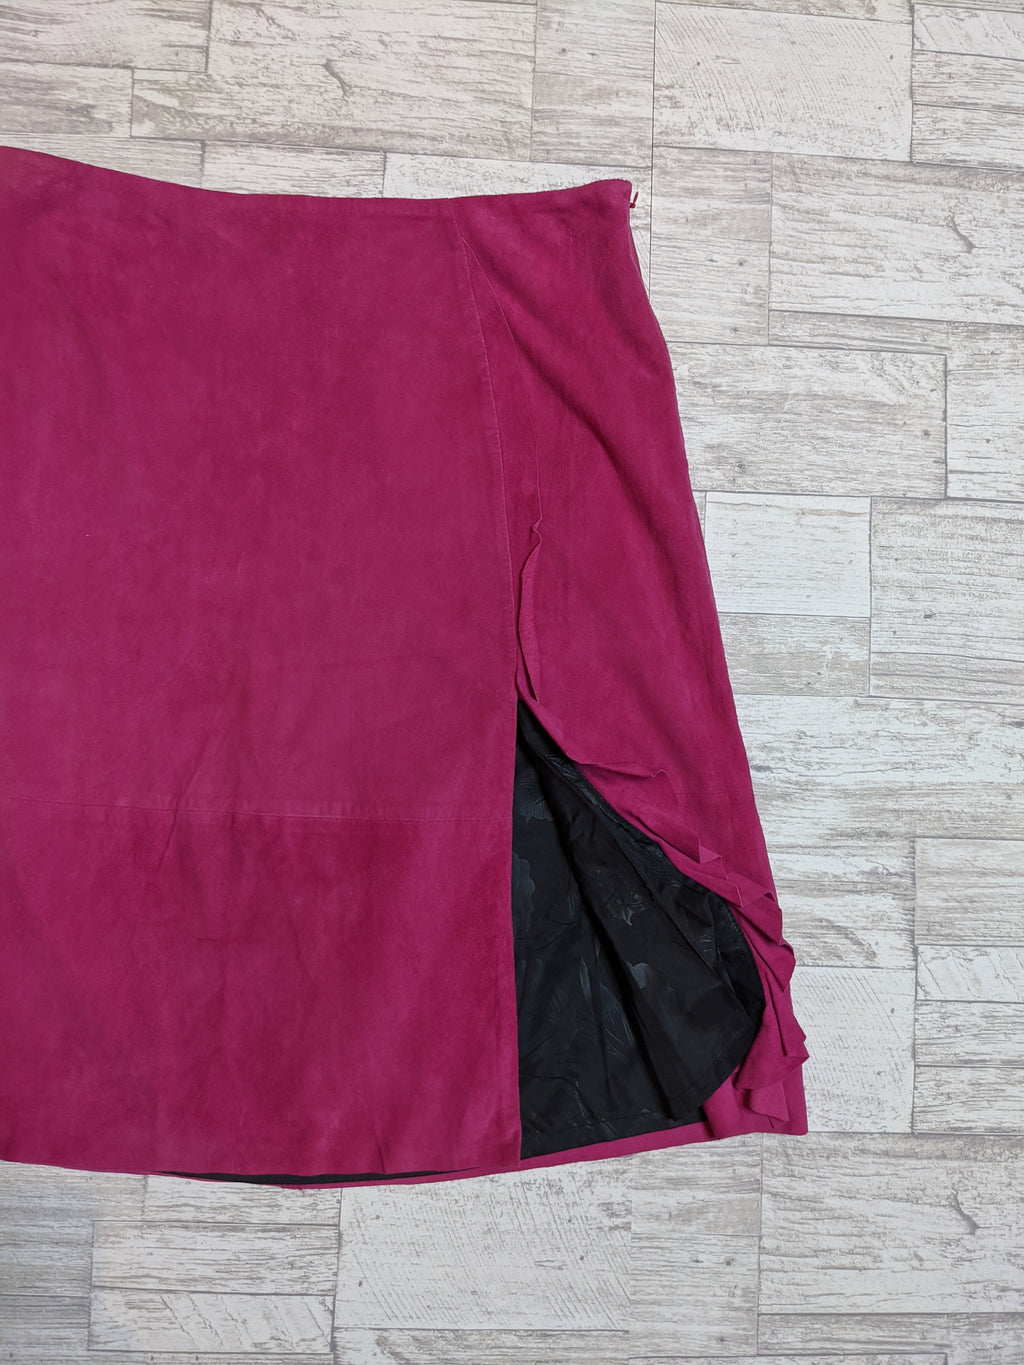 DEANE & WHITE | Leather Skirt Sz 12